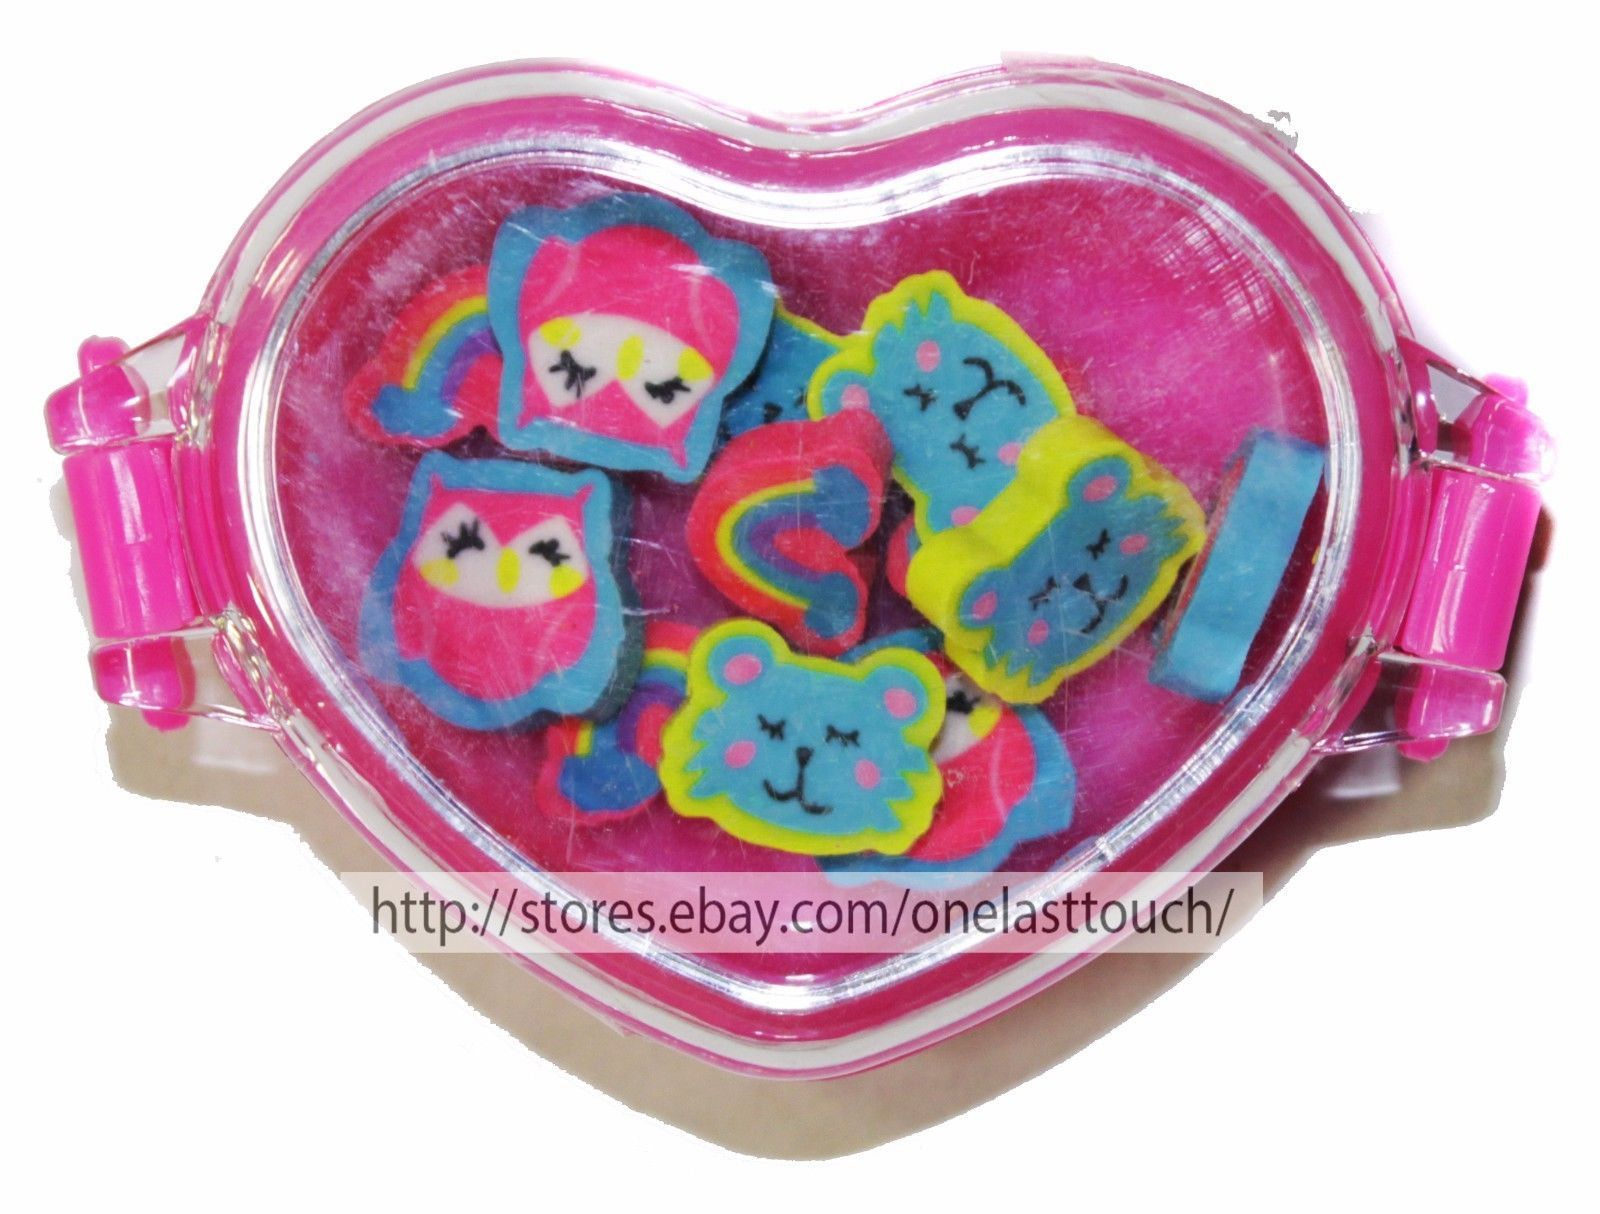 MADE FOR RETAIL* 12 Count MINI ERASERS Owls+Rainbows+Bears HEART CONTAINER New!